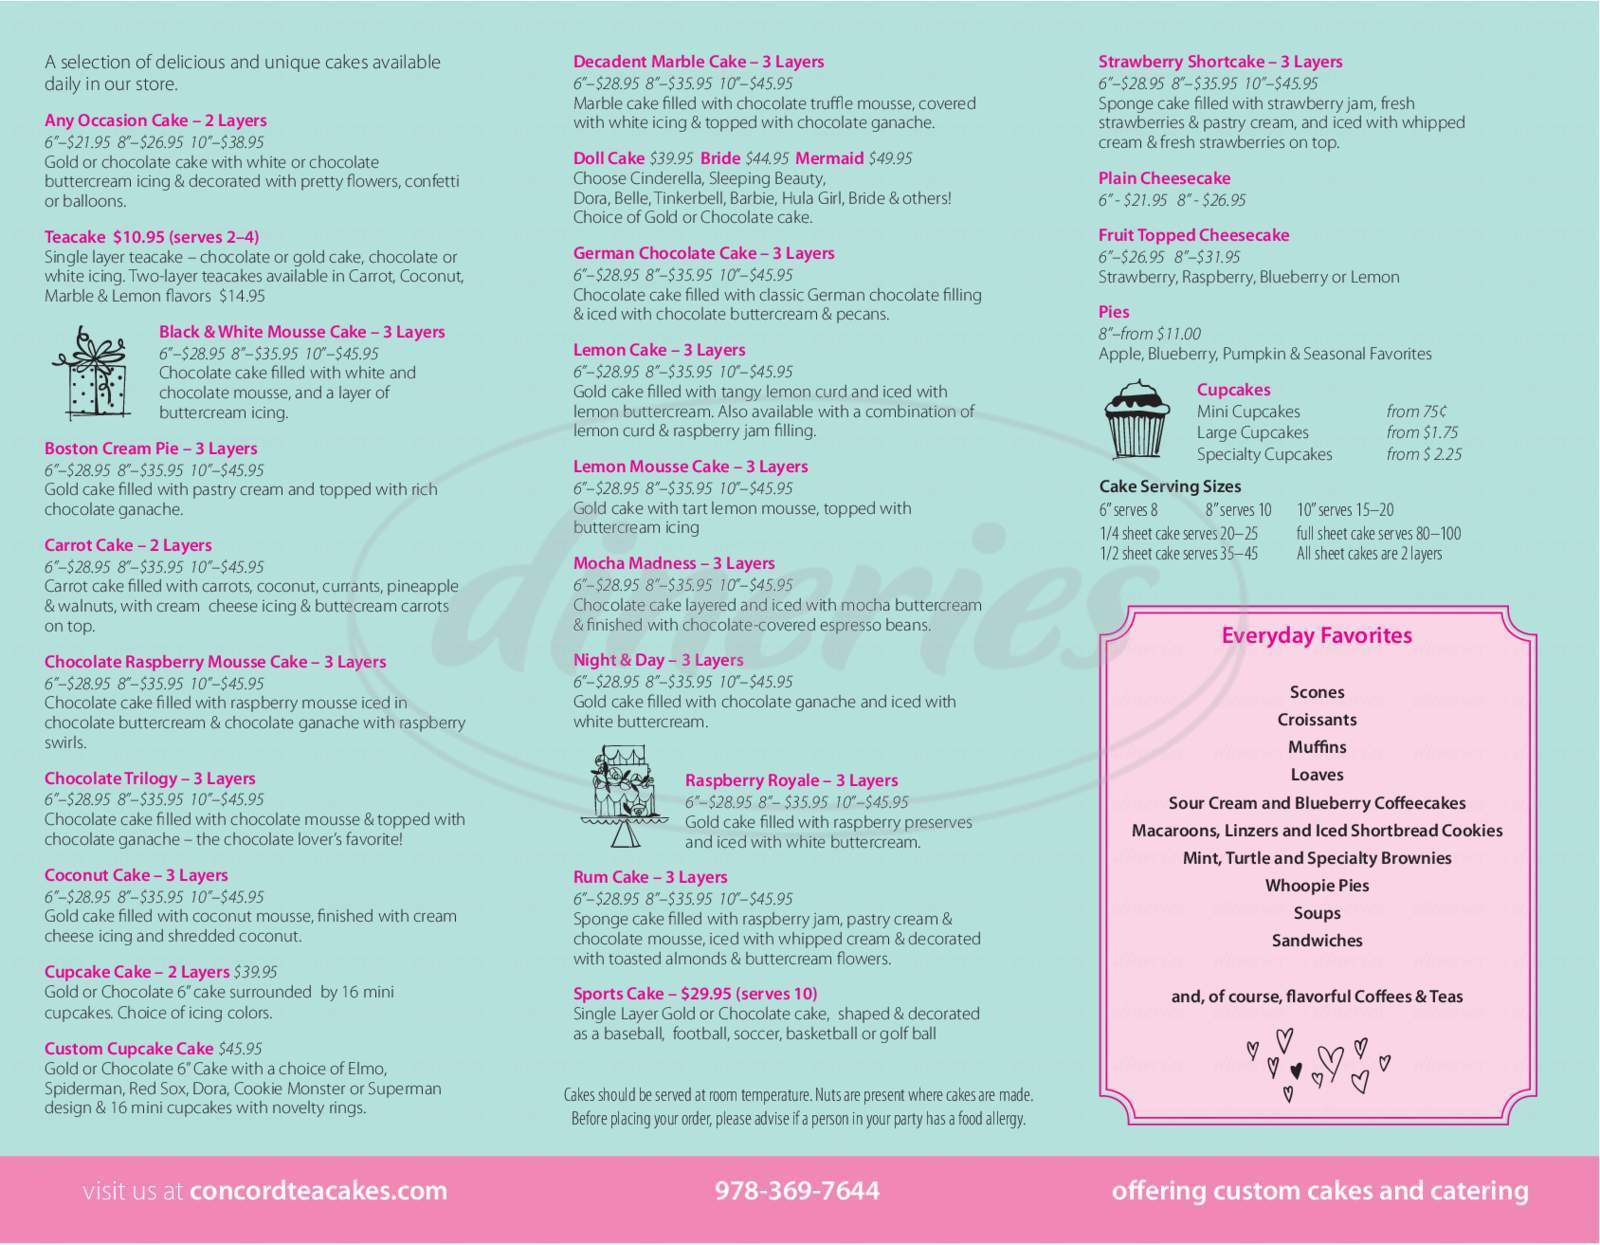 menu for Concord Teacakes